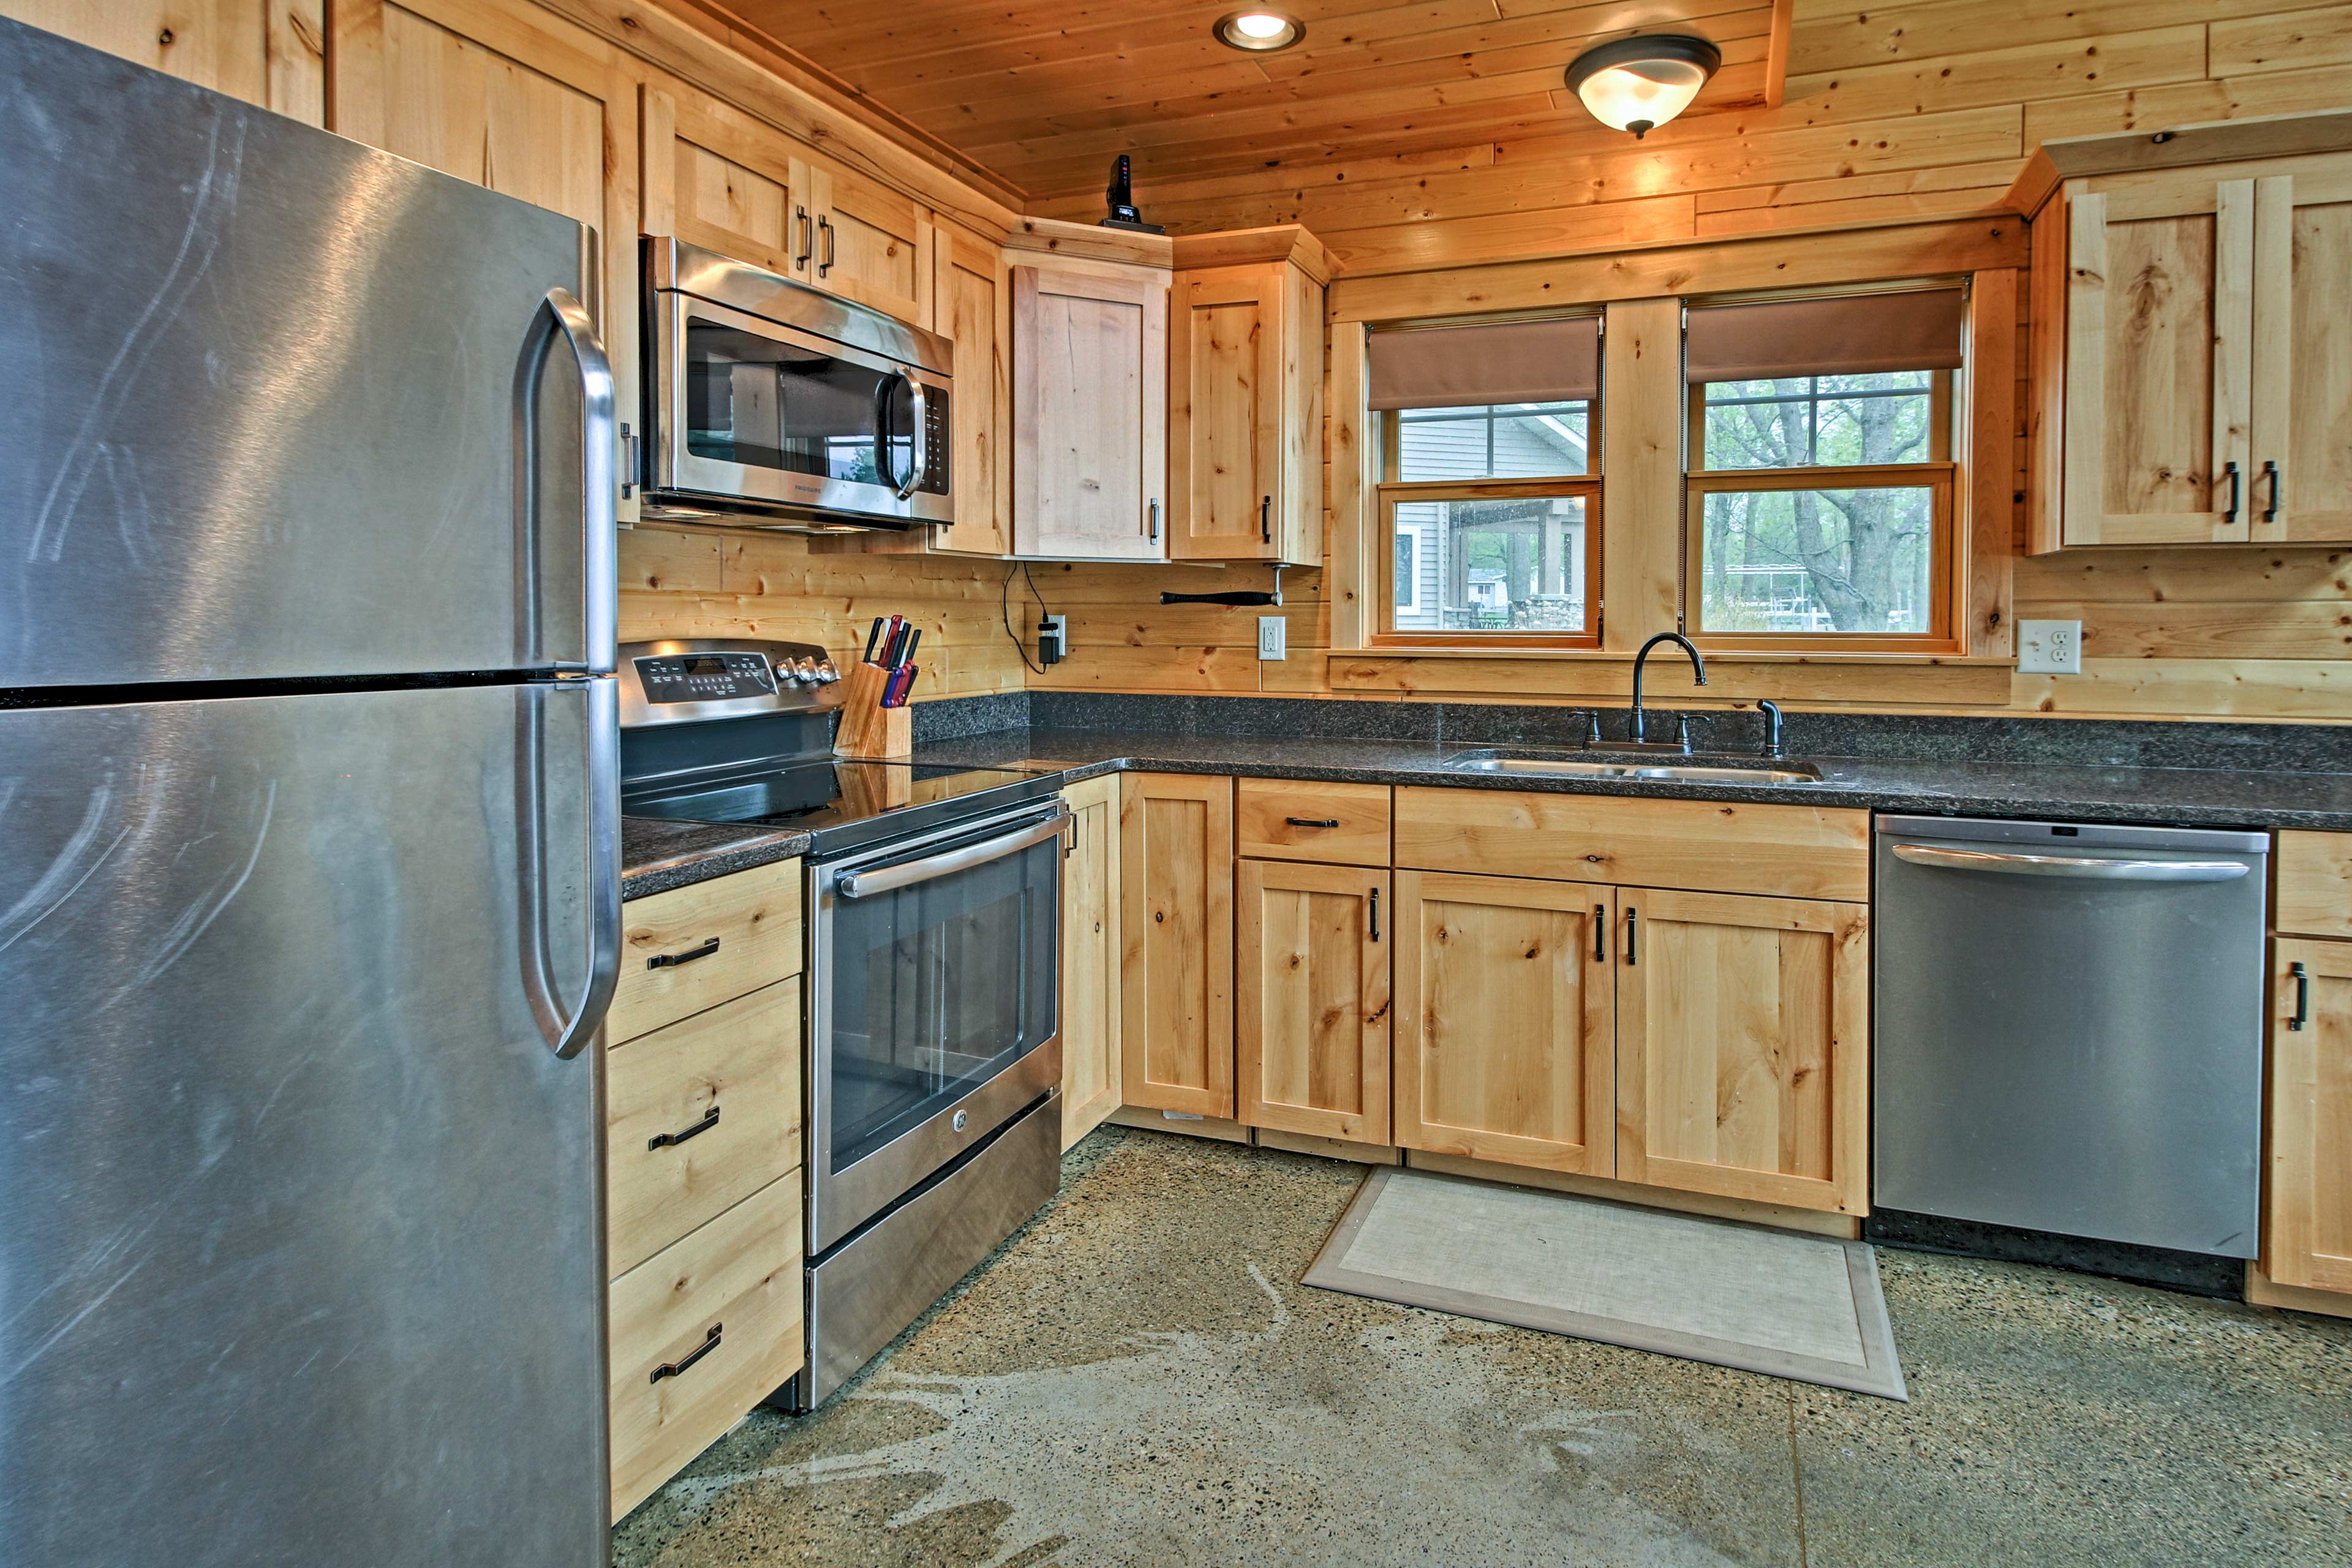 The living room opens up to the fully equipped kitchen.